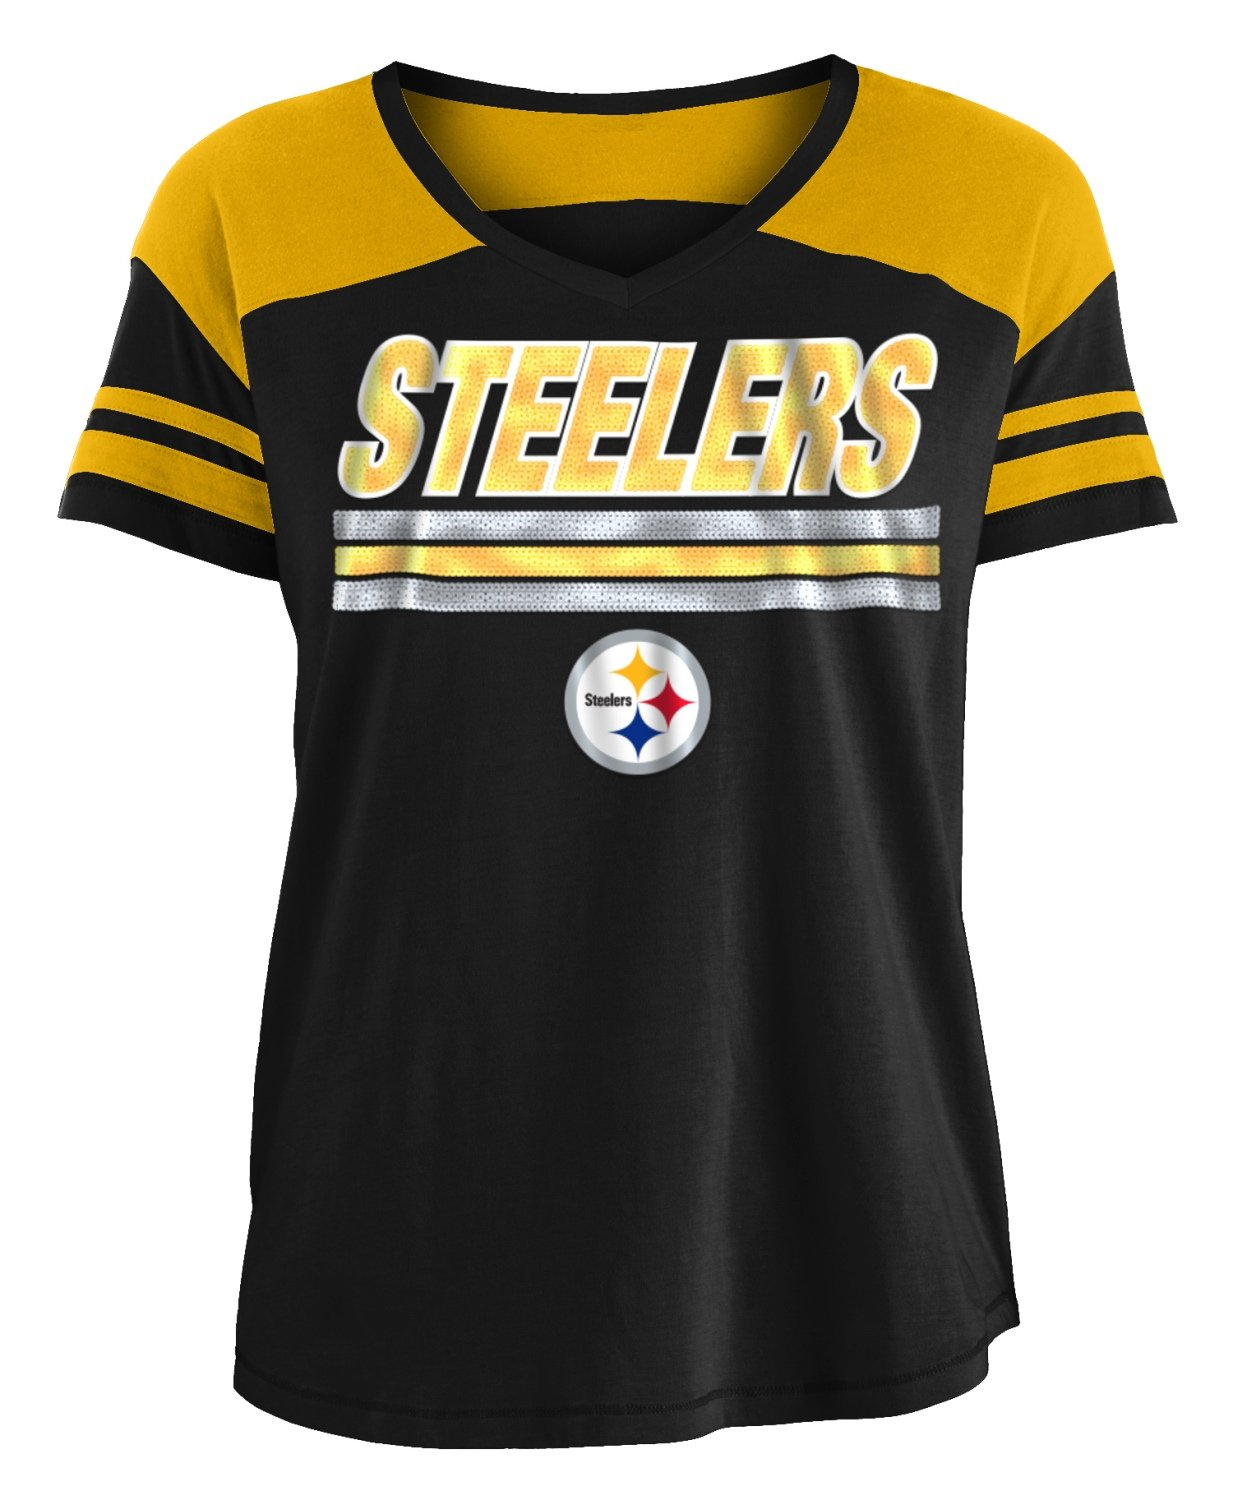 b06fccaef Amazon.com   New Era Pittsburgh Steelers Women s NFL Field Goal V-Neck  Short Sleeve Shirt   Sports   Outdoors